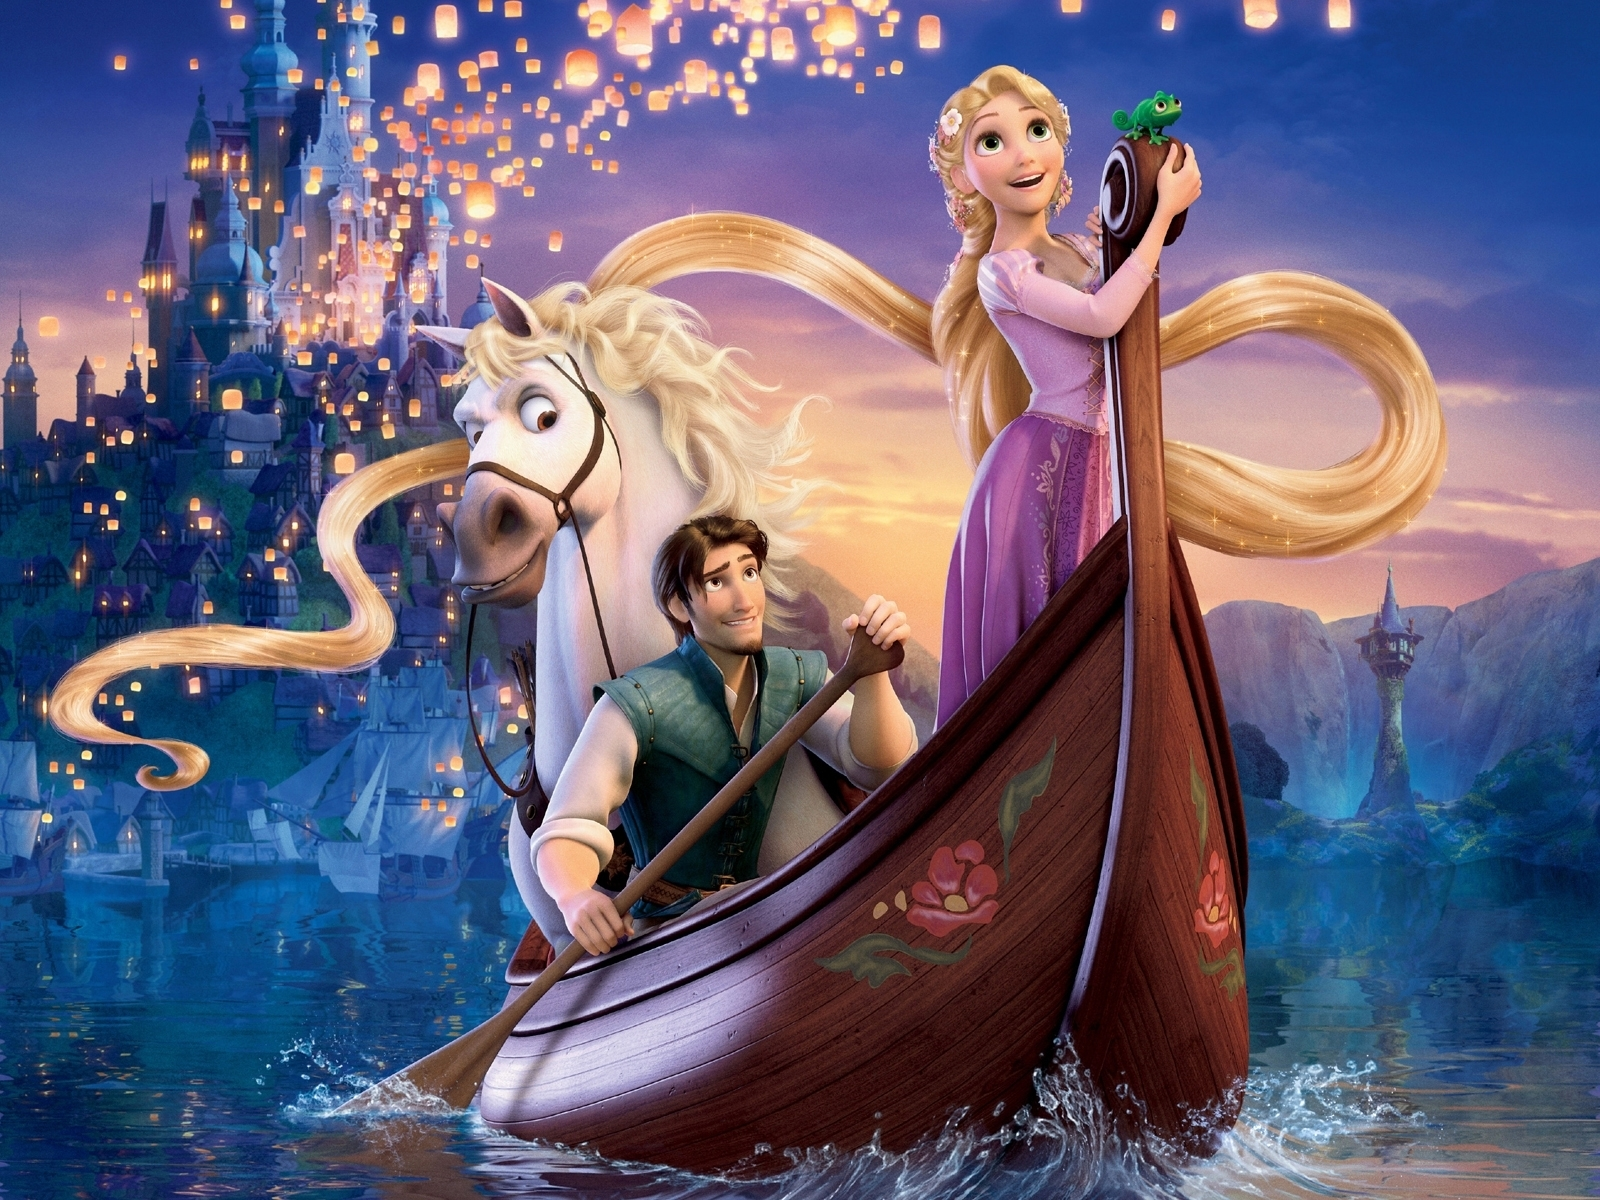 Tangled!!!!! - Tangled Wallpaper (18015052) - Fanpop